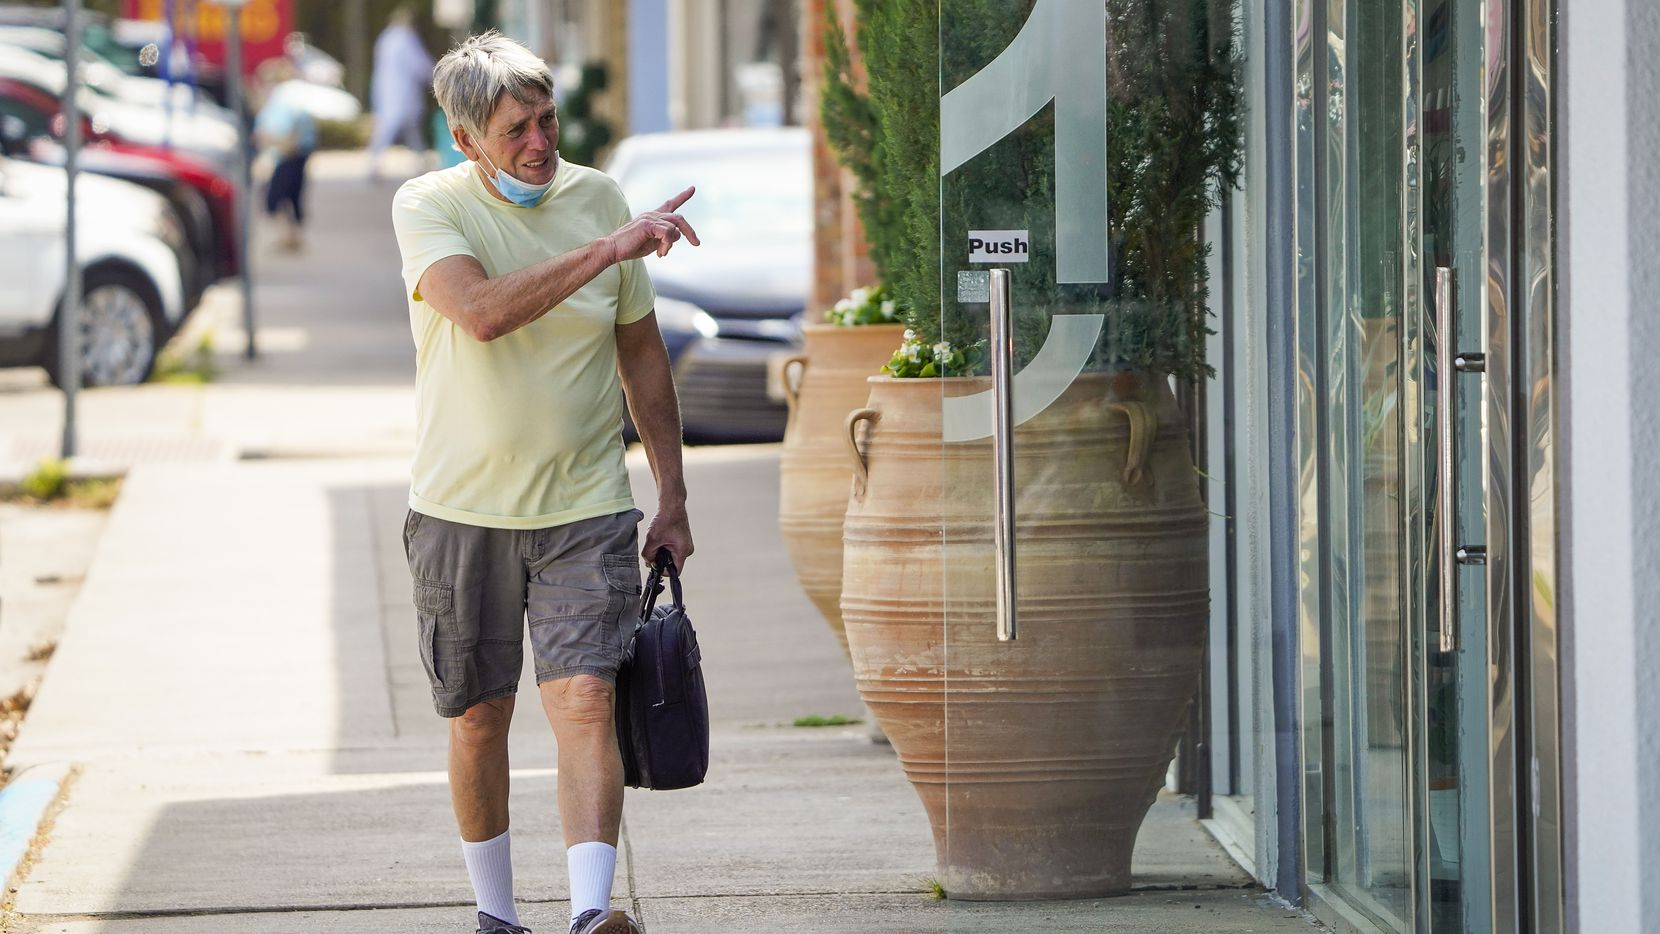 Vic Colon waves to people inside a business along Lovers Lane during his daily walk.